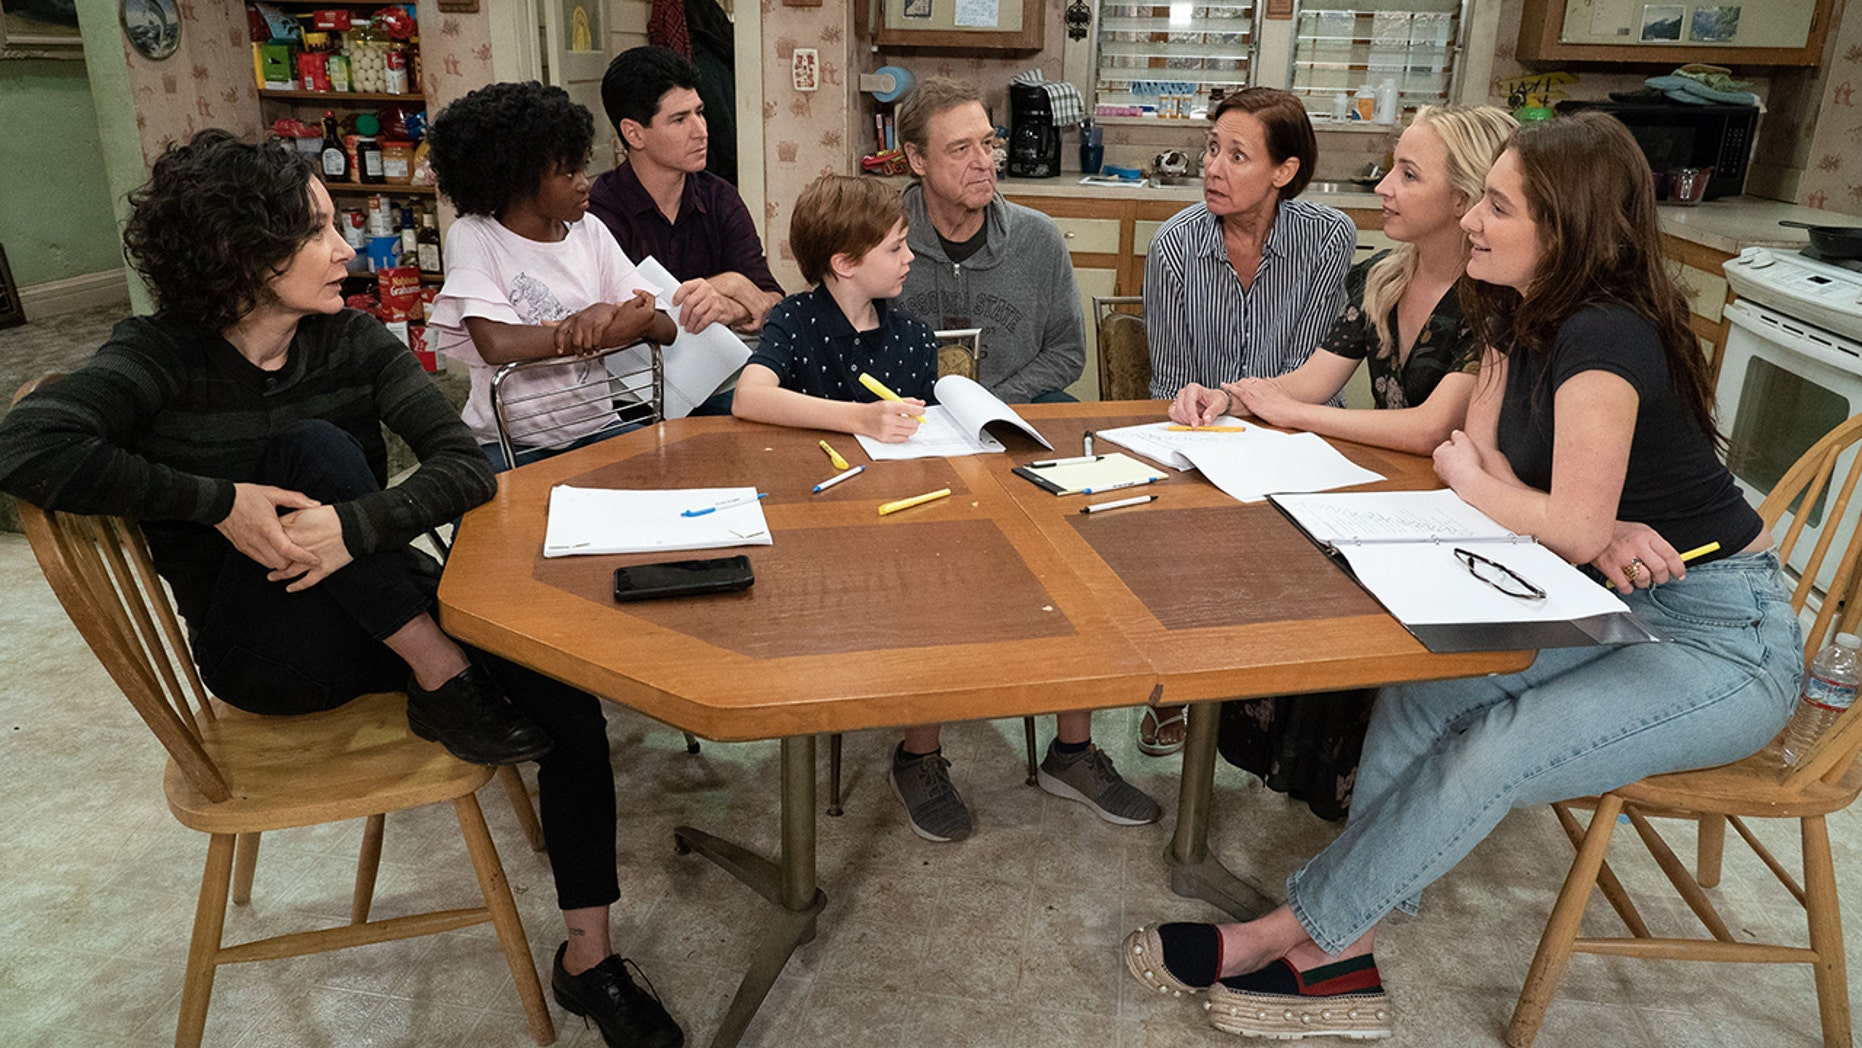 THE CONNERS - The Conners reunited with the official start of production today on the Warner Bros. lot. (ABC/Eric McCandless) SARA GILBERT, JAYDEN REY, MICHAEL FISHMAN, AMES MCNAMARA, JOHN GOODMAN, LAURIE METCALF, LECY GORANSON, EMMA KENNEY